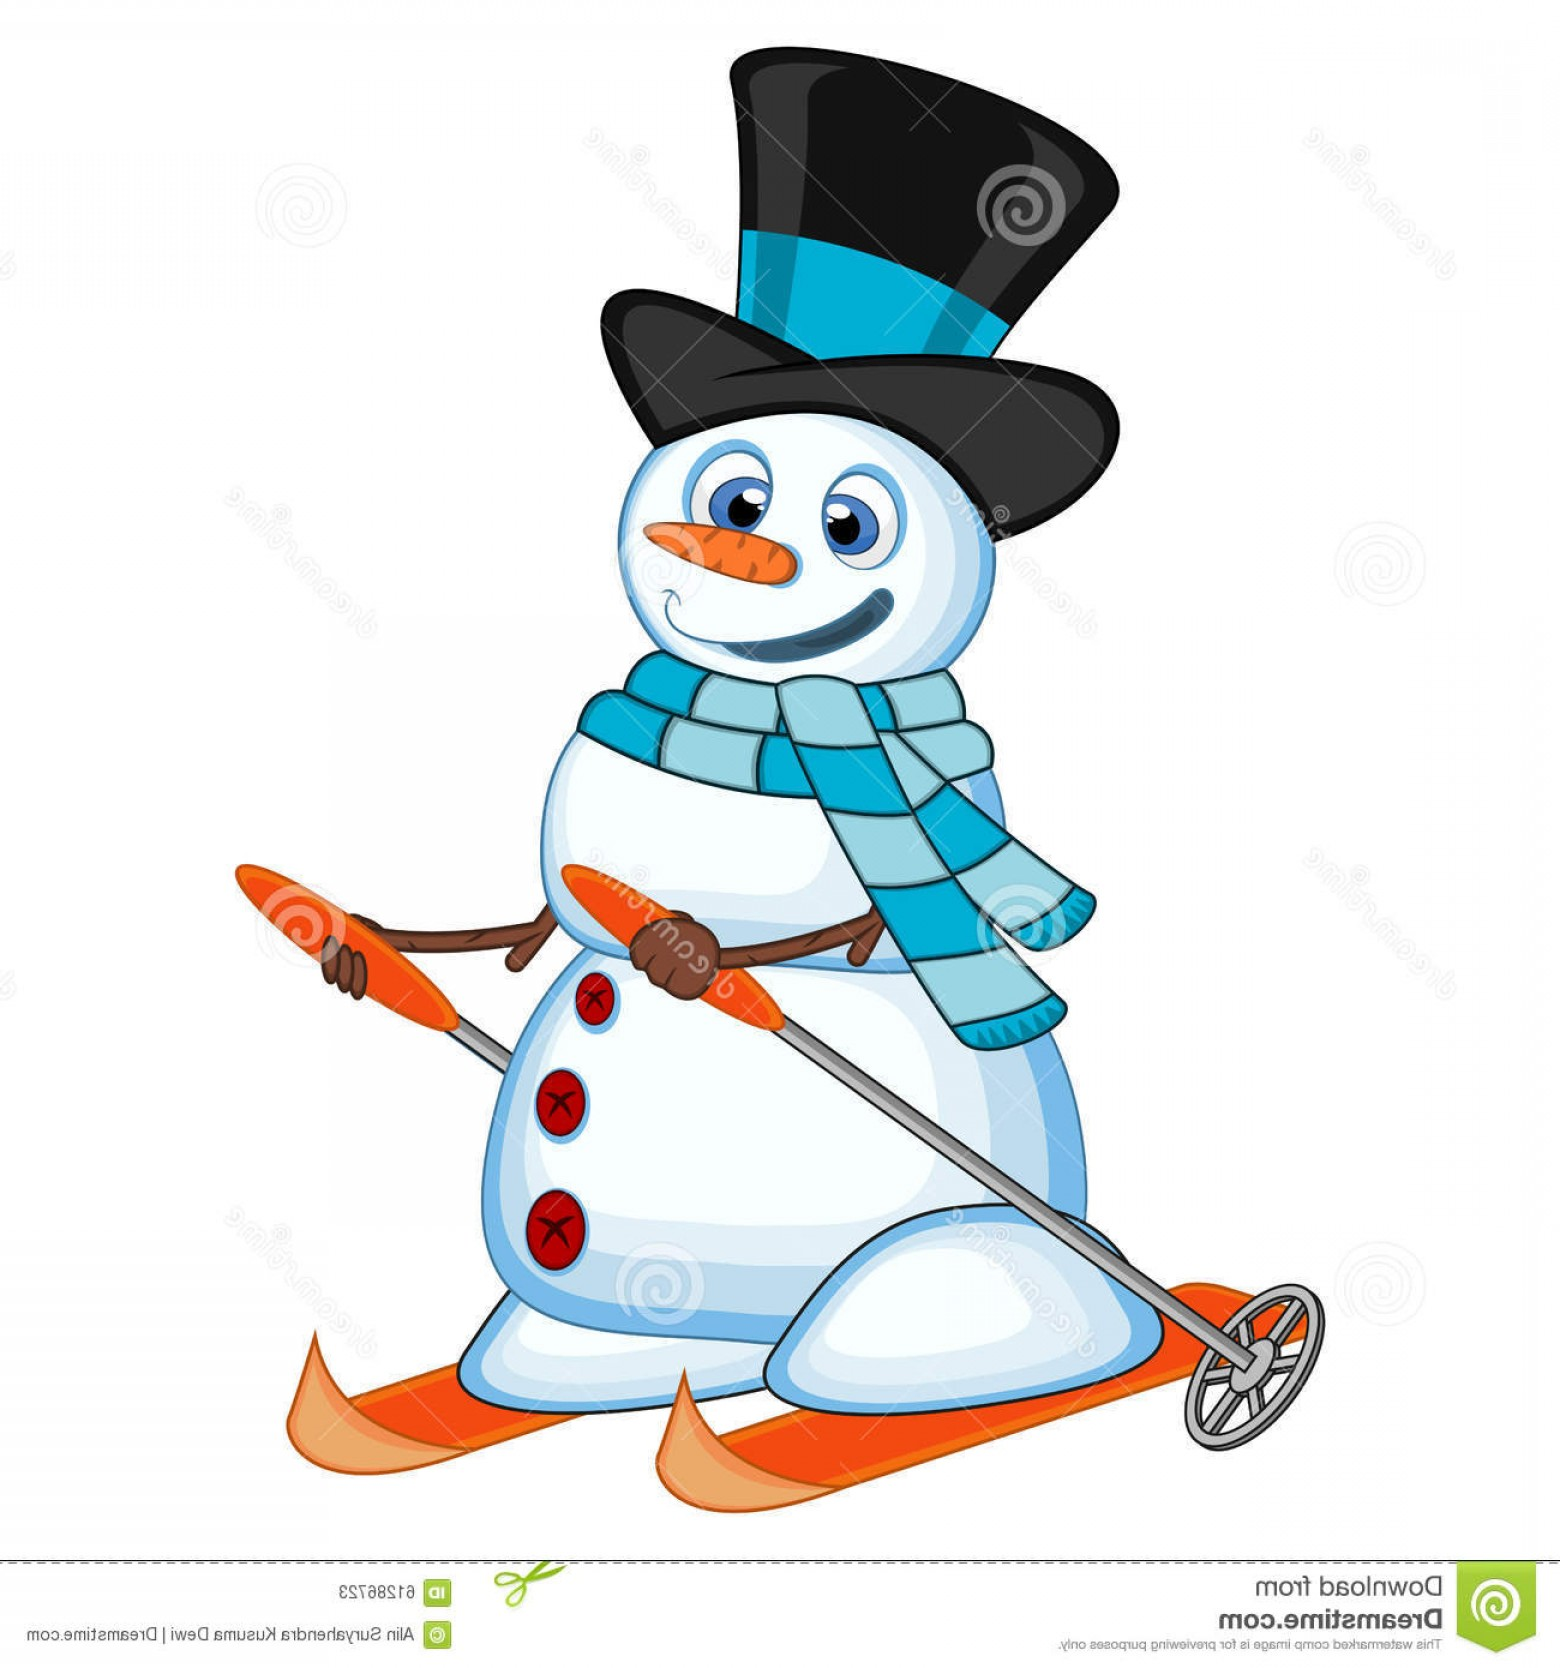 No Hat With Snowman Vector: Stock Illustration Snowman Hat Blue Scarf Skiing Your Design Vector Illustration Colourful Image